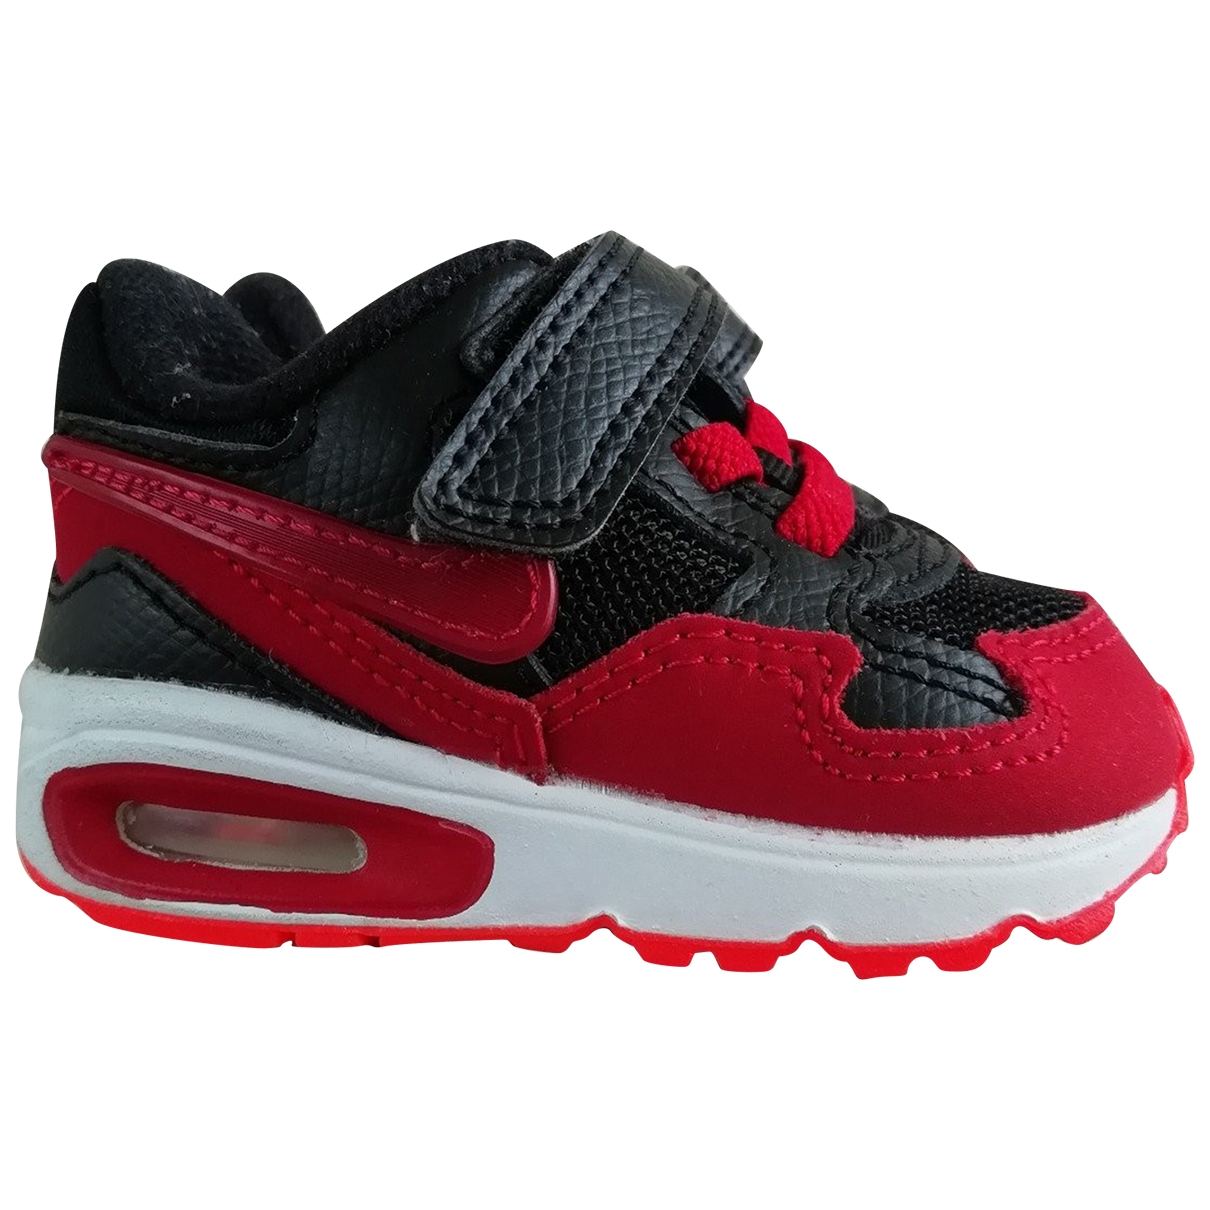 Nike Air Max  Red Rubber Trainers for Kids 18 EU